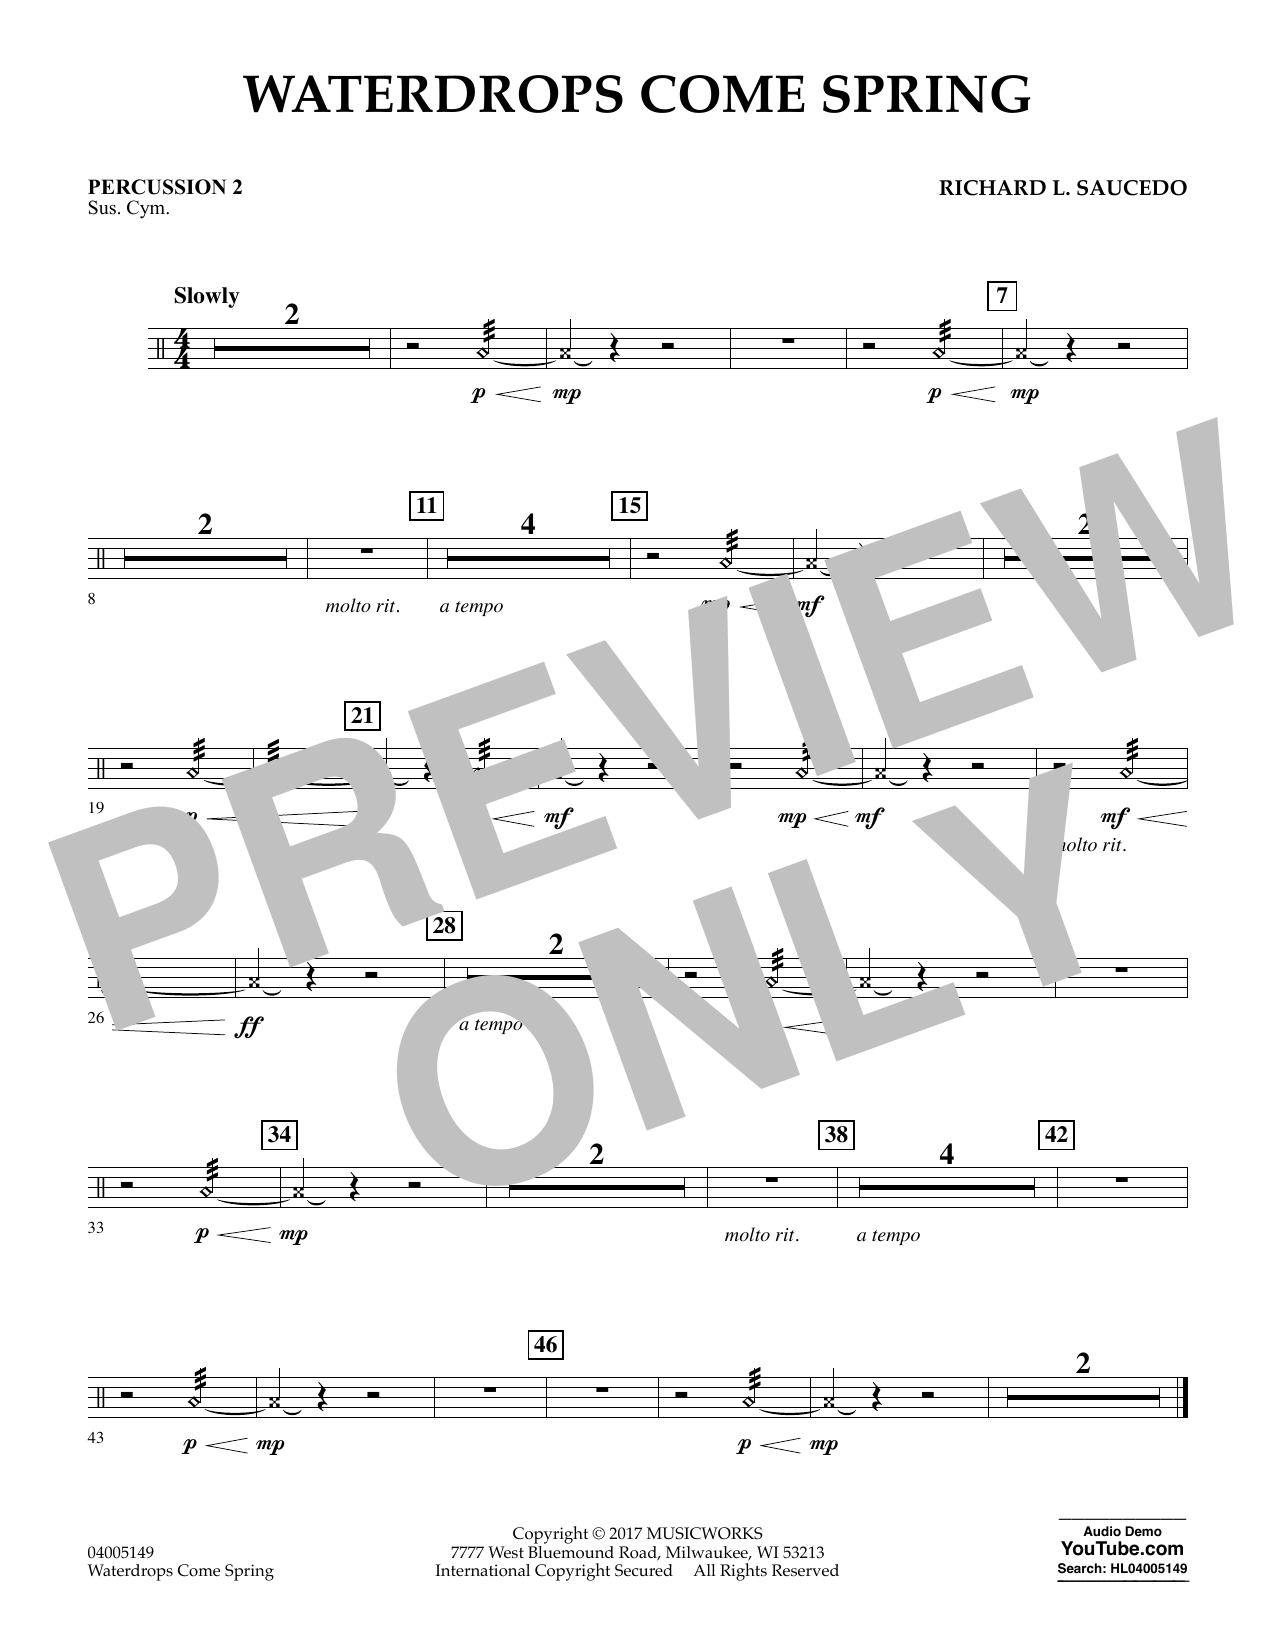 Richard L. Saucedo Waterdrops Come Spring - Percussion 2 sheet music notes and chords. Download Printable PDF.